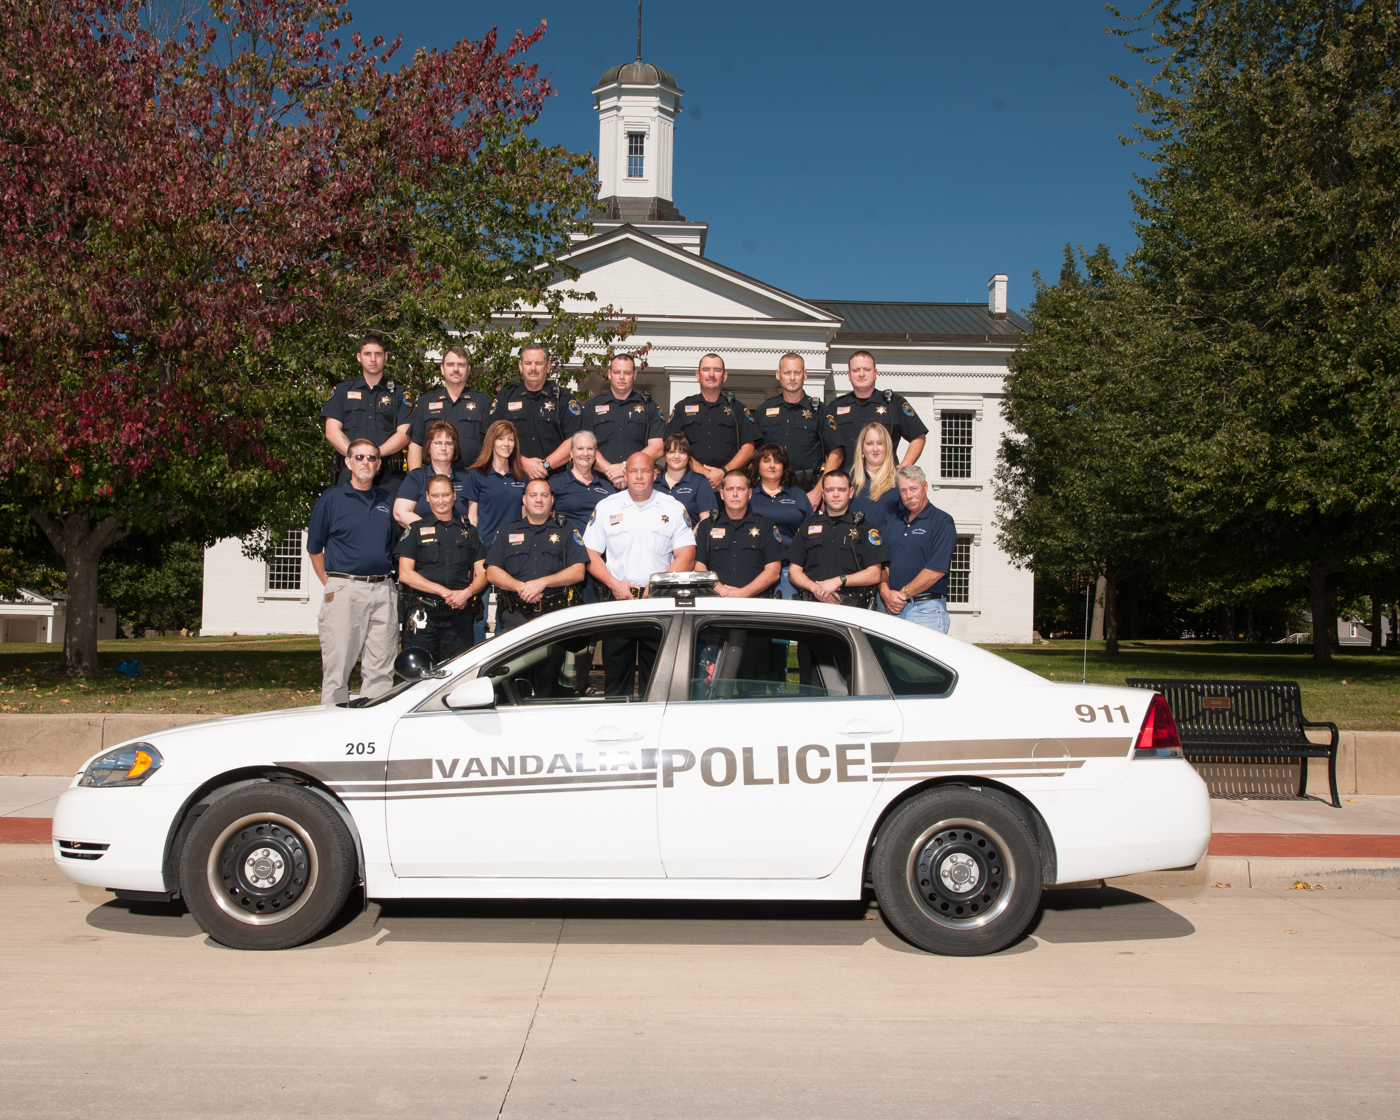 Vandalia, Illinois Police Department